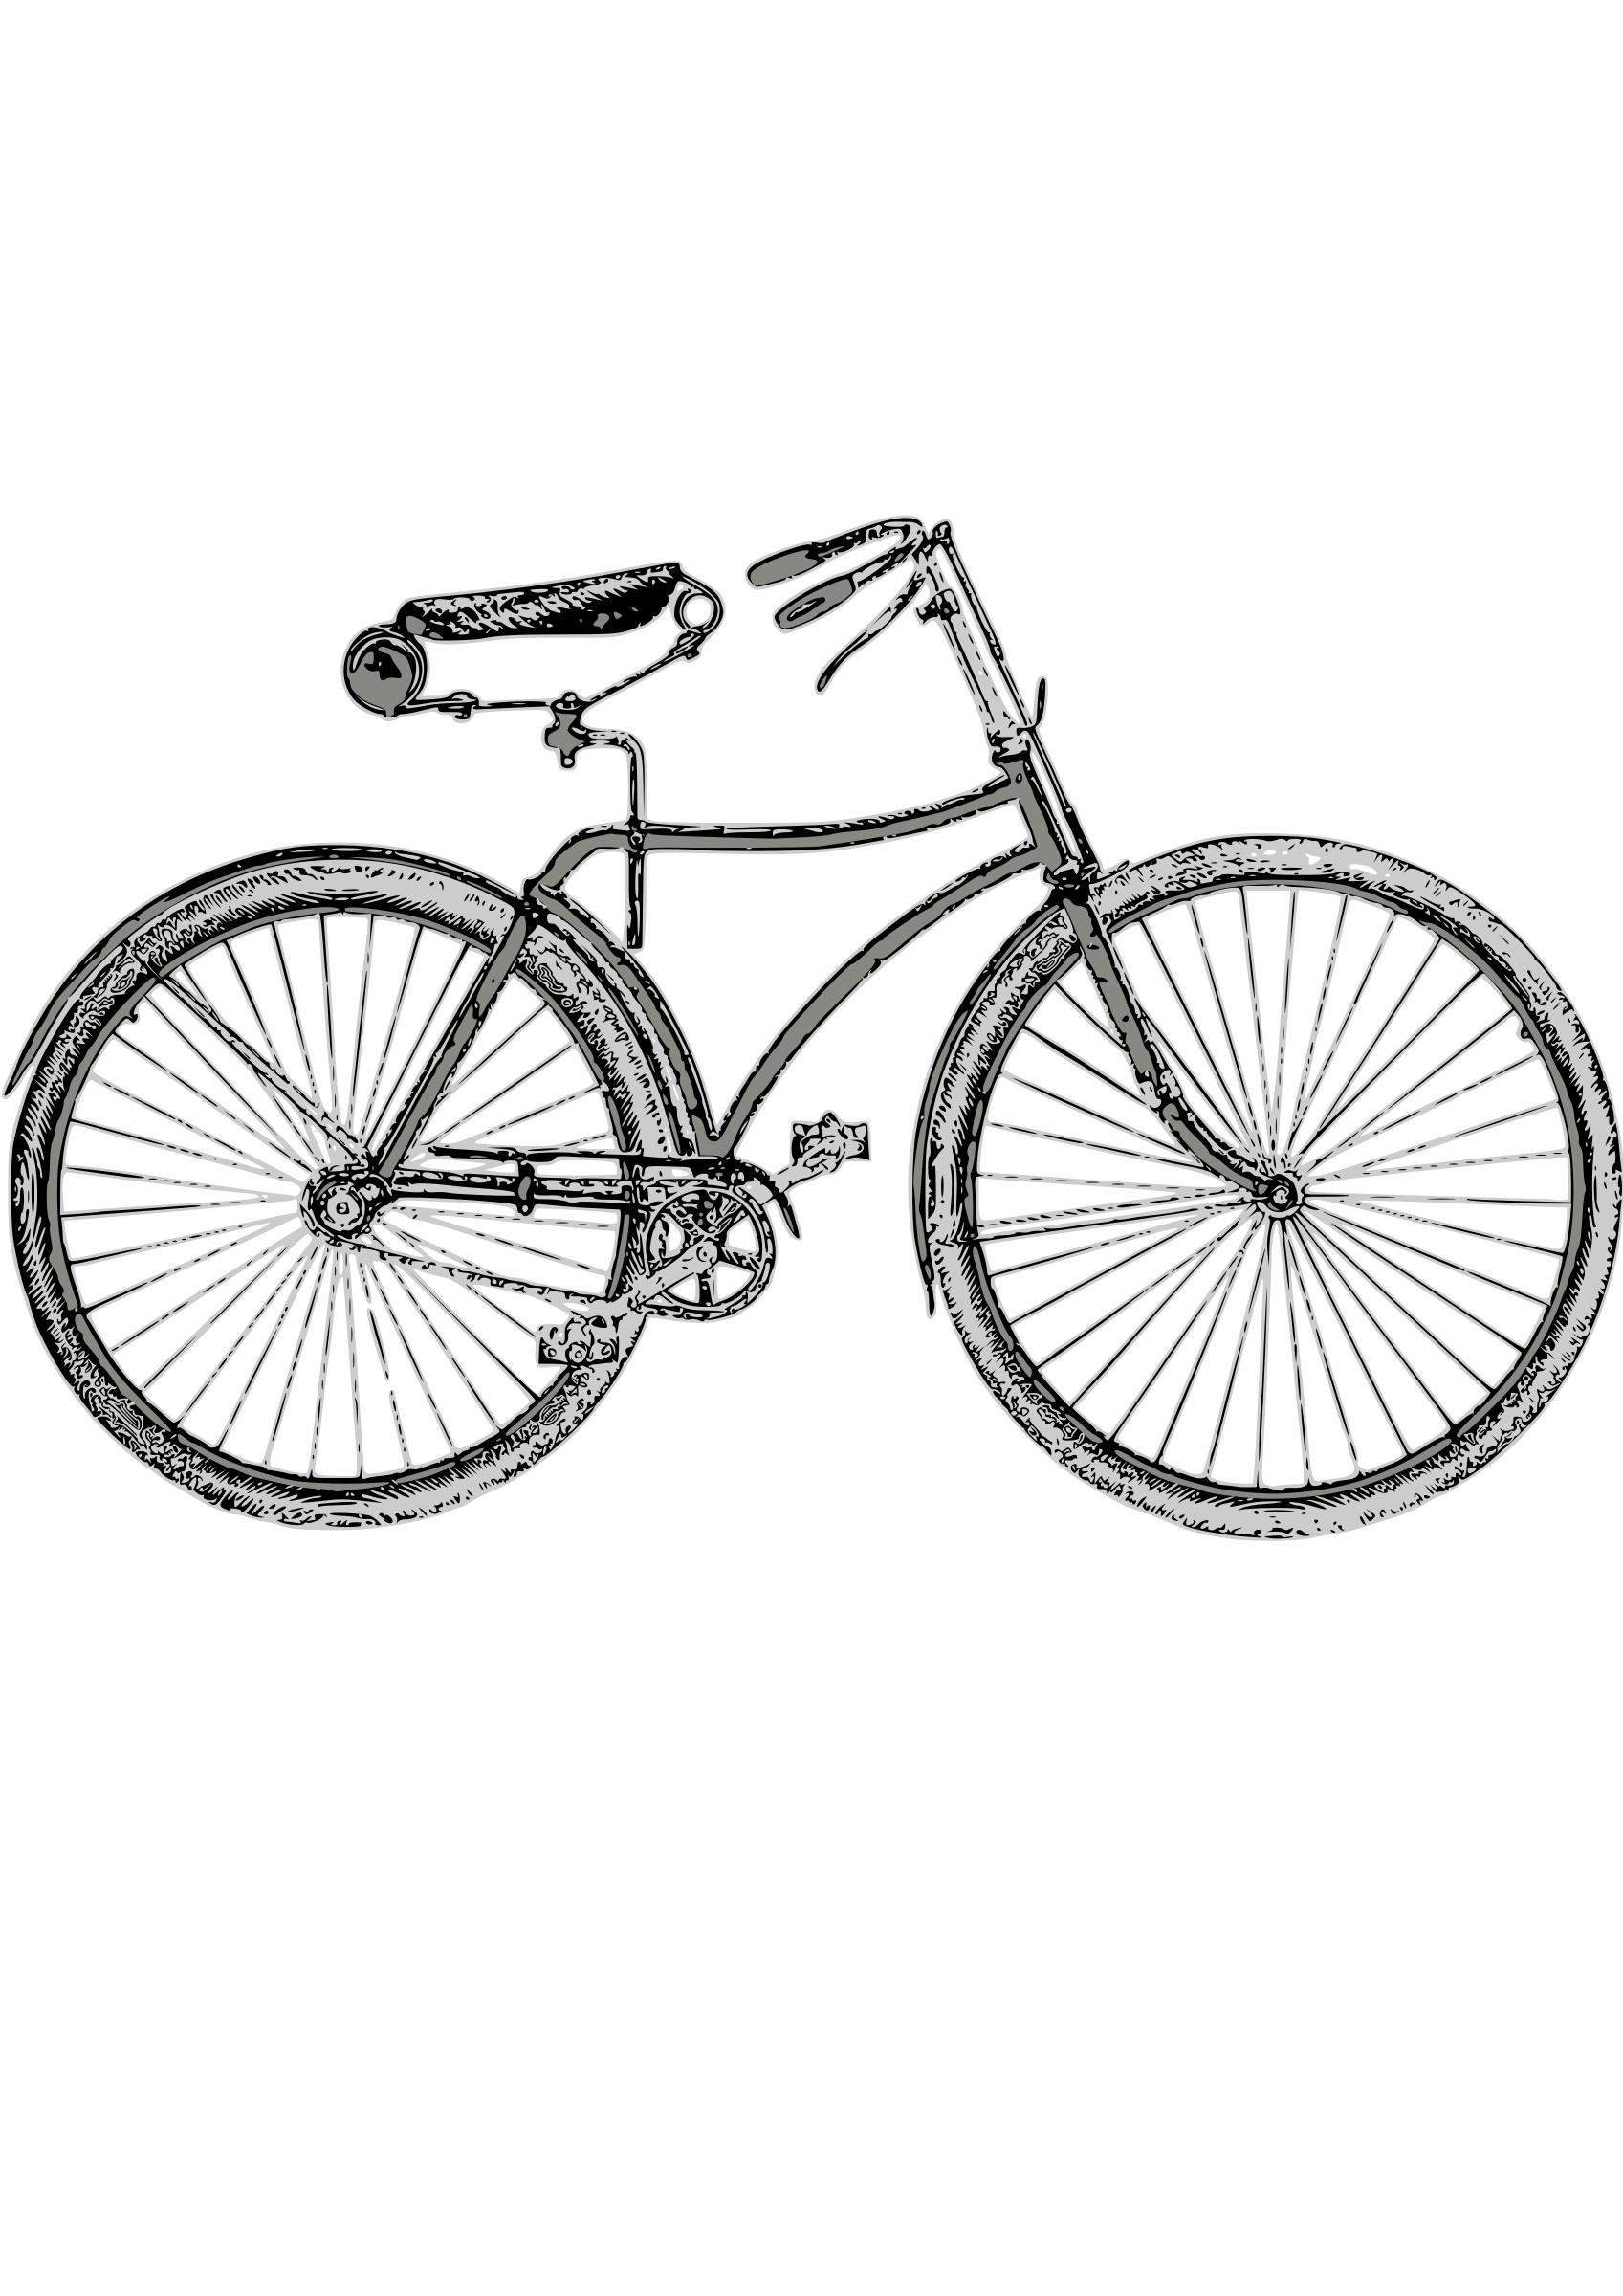 Cycle clipart retro bike. Vintage drawing at getdrawings